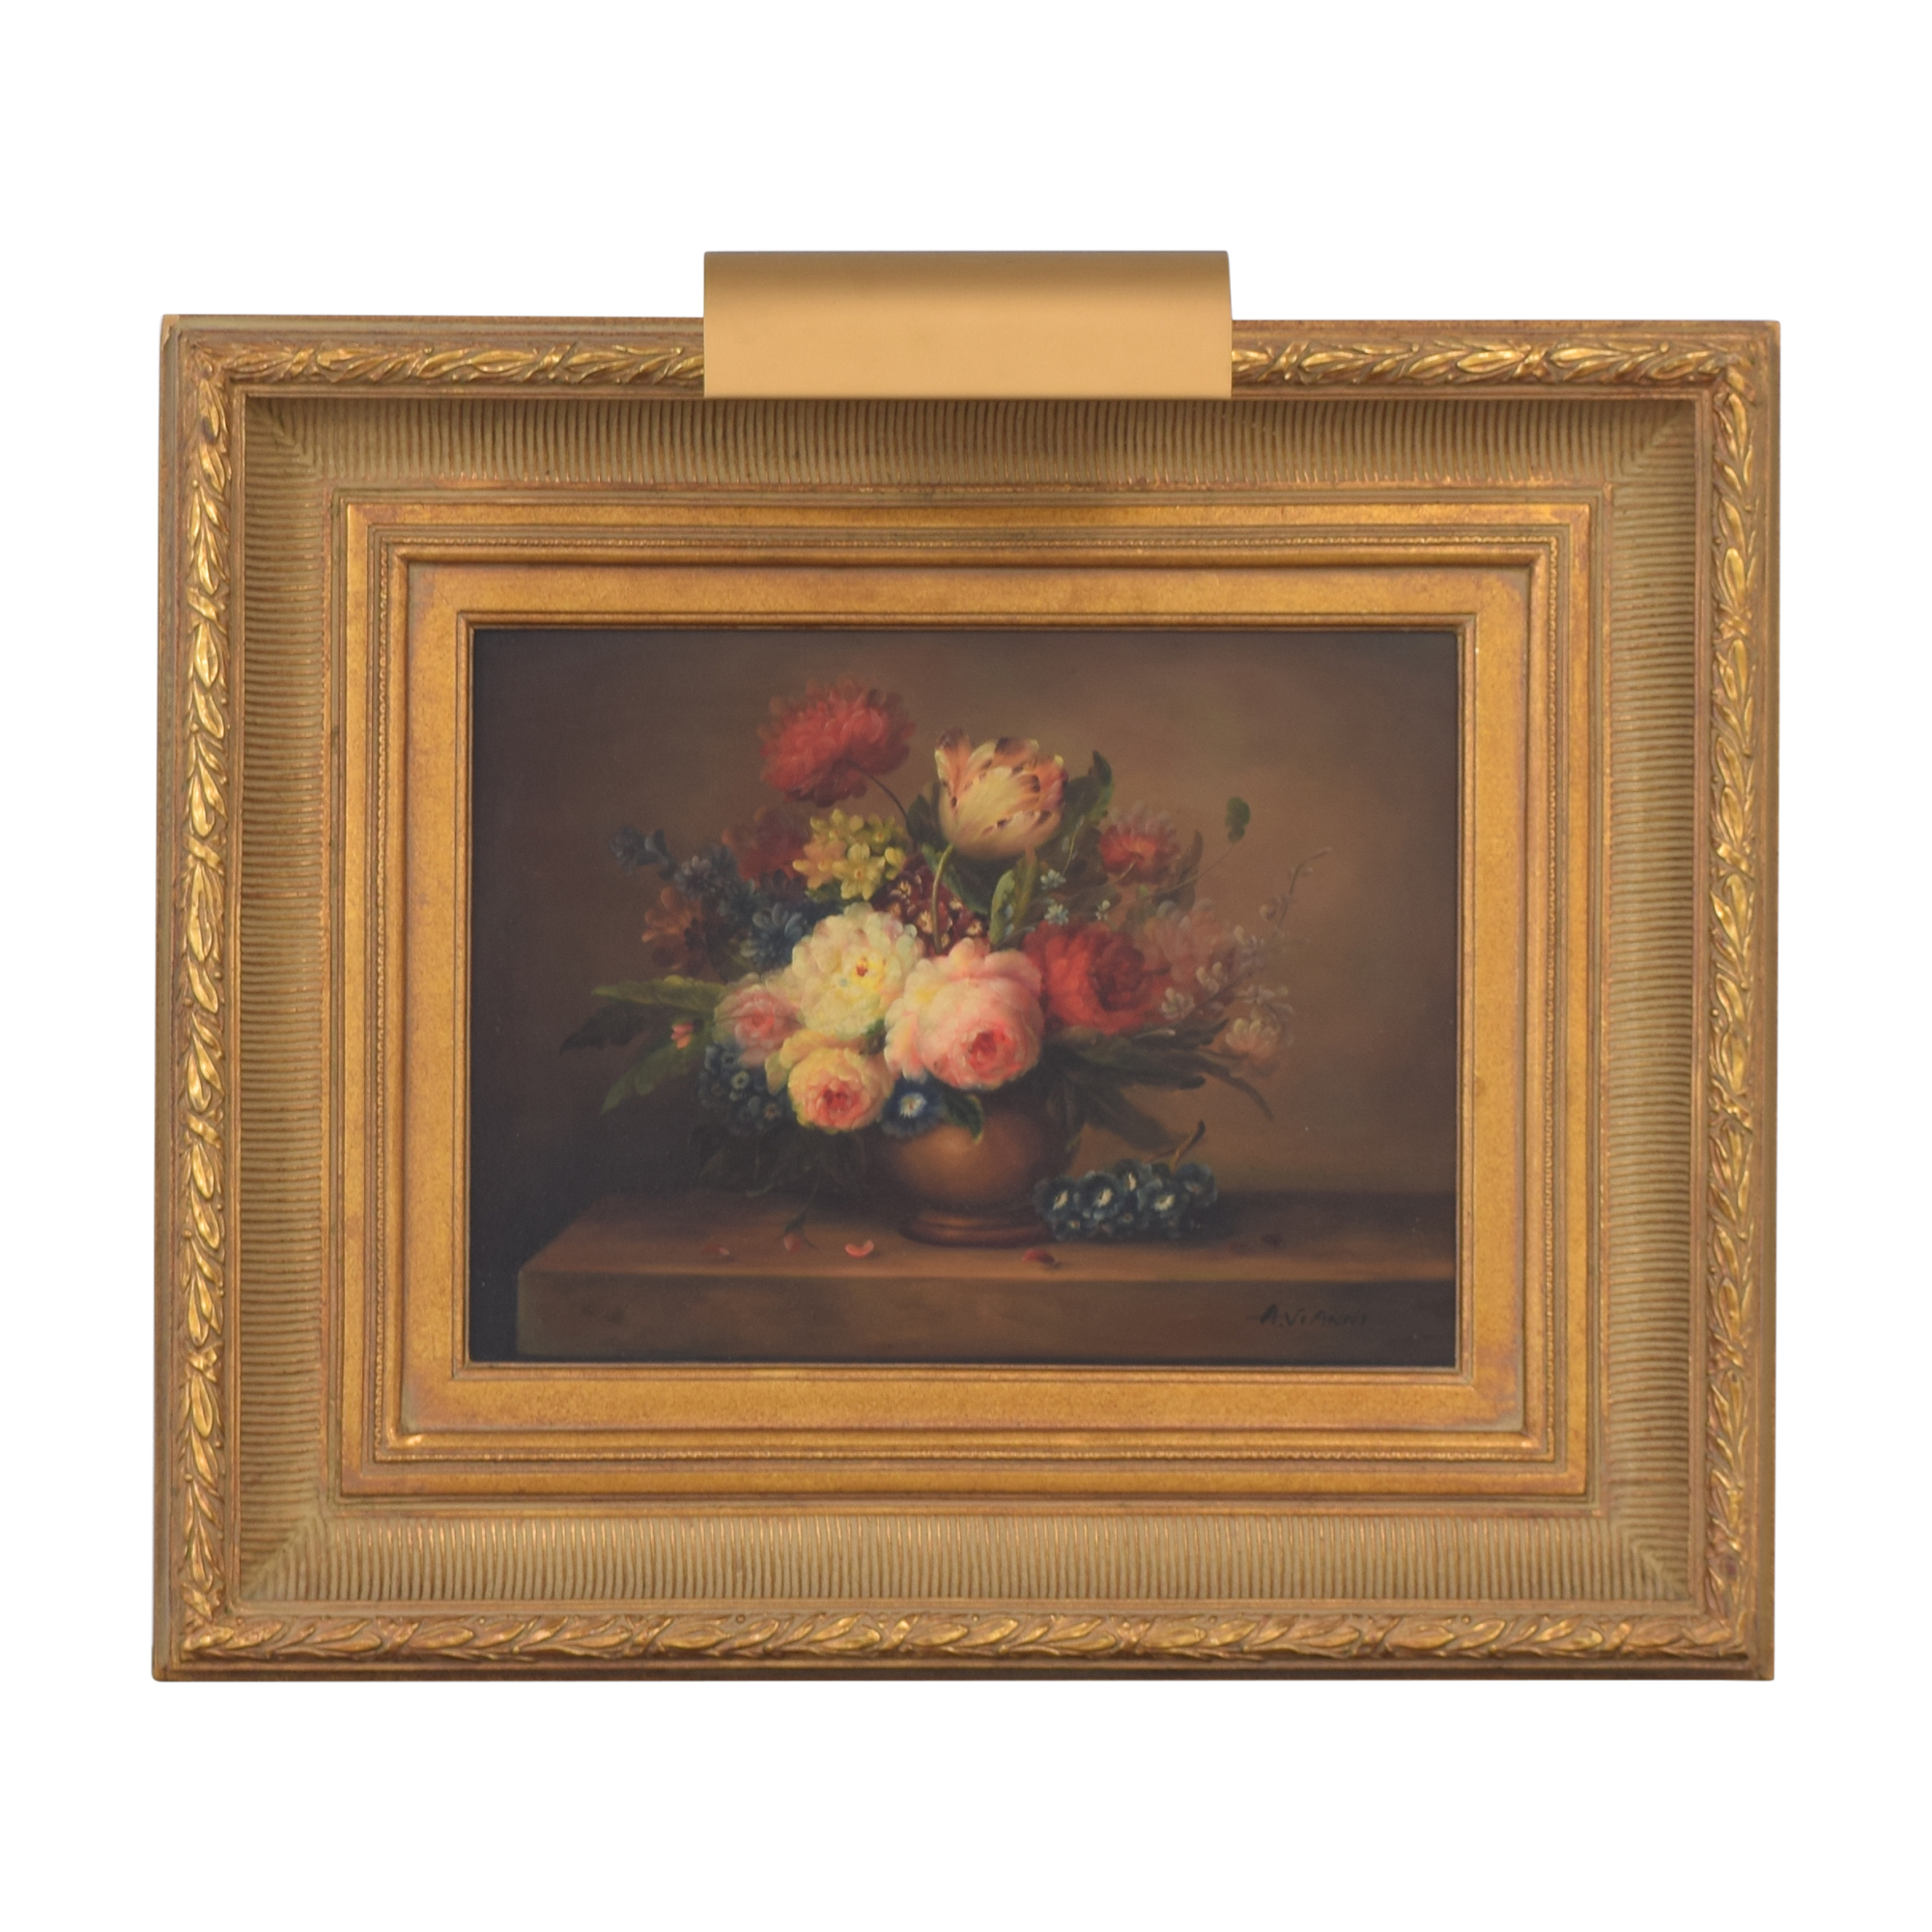 Framed Floral Wall Art / Wall Art